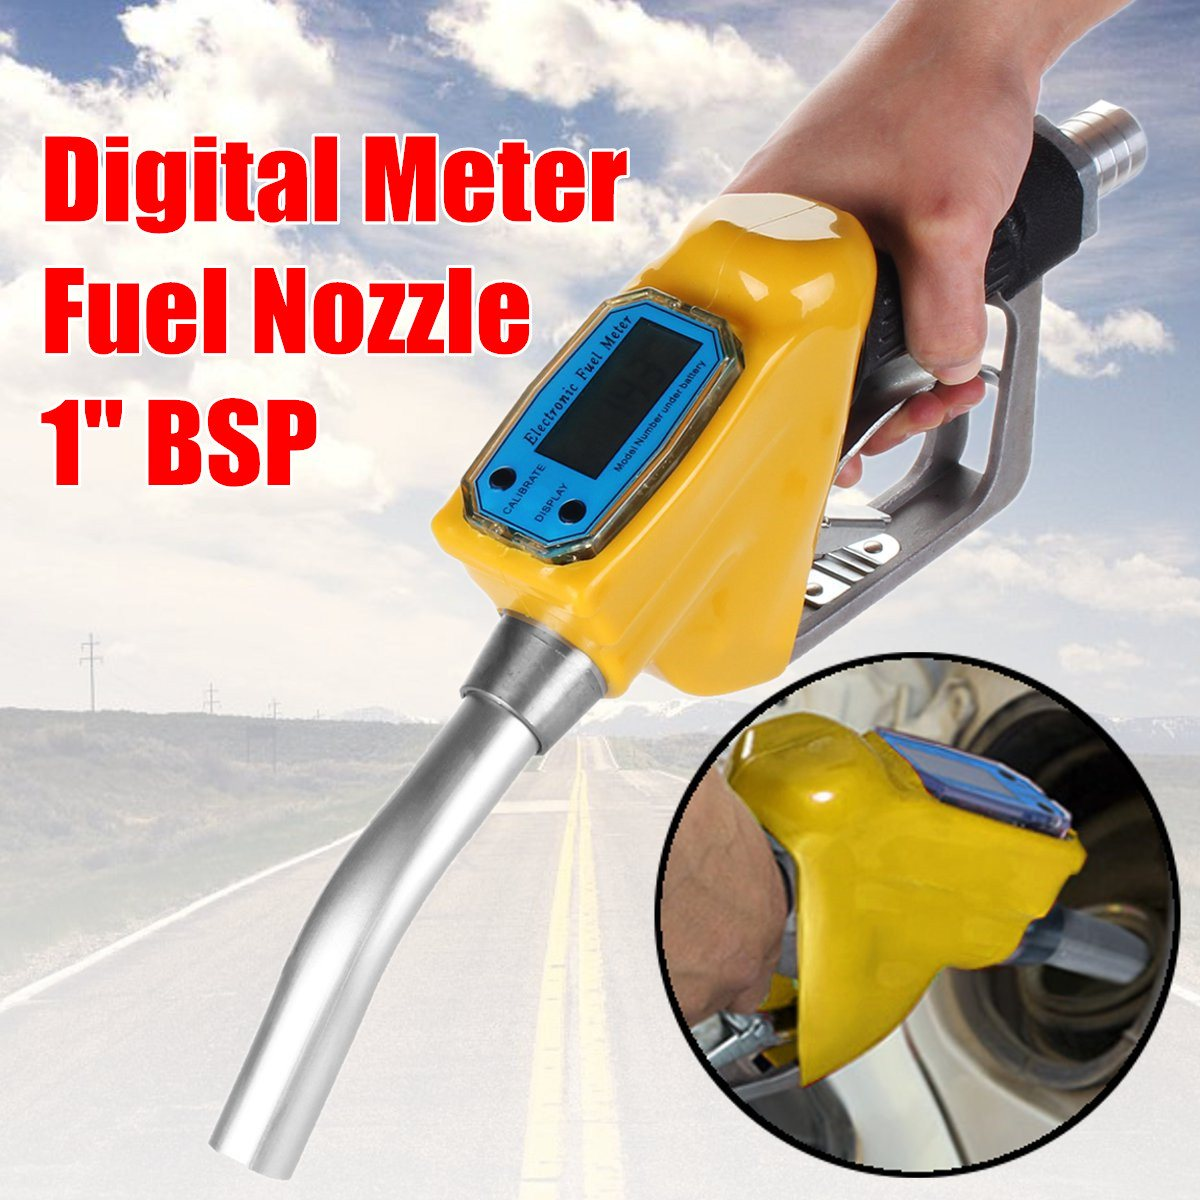 Brand New 1 BSP Gasoline Derv Petrol Nozzle Digital Flow Meter Delivery free delivery nozzle 253 433 512 kong